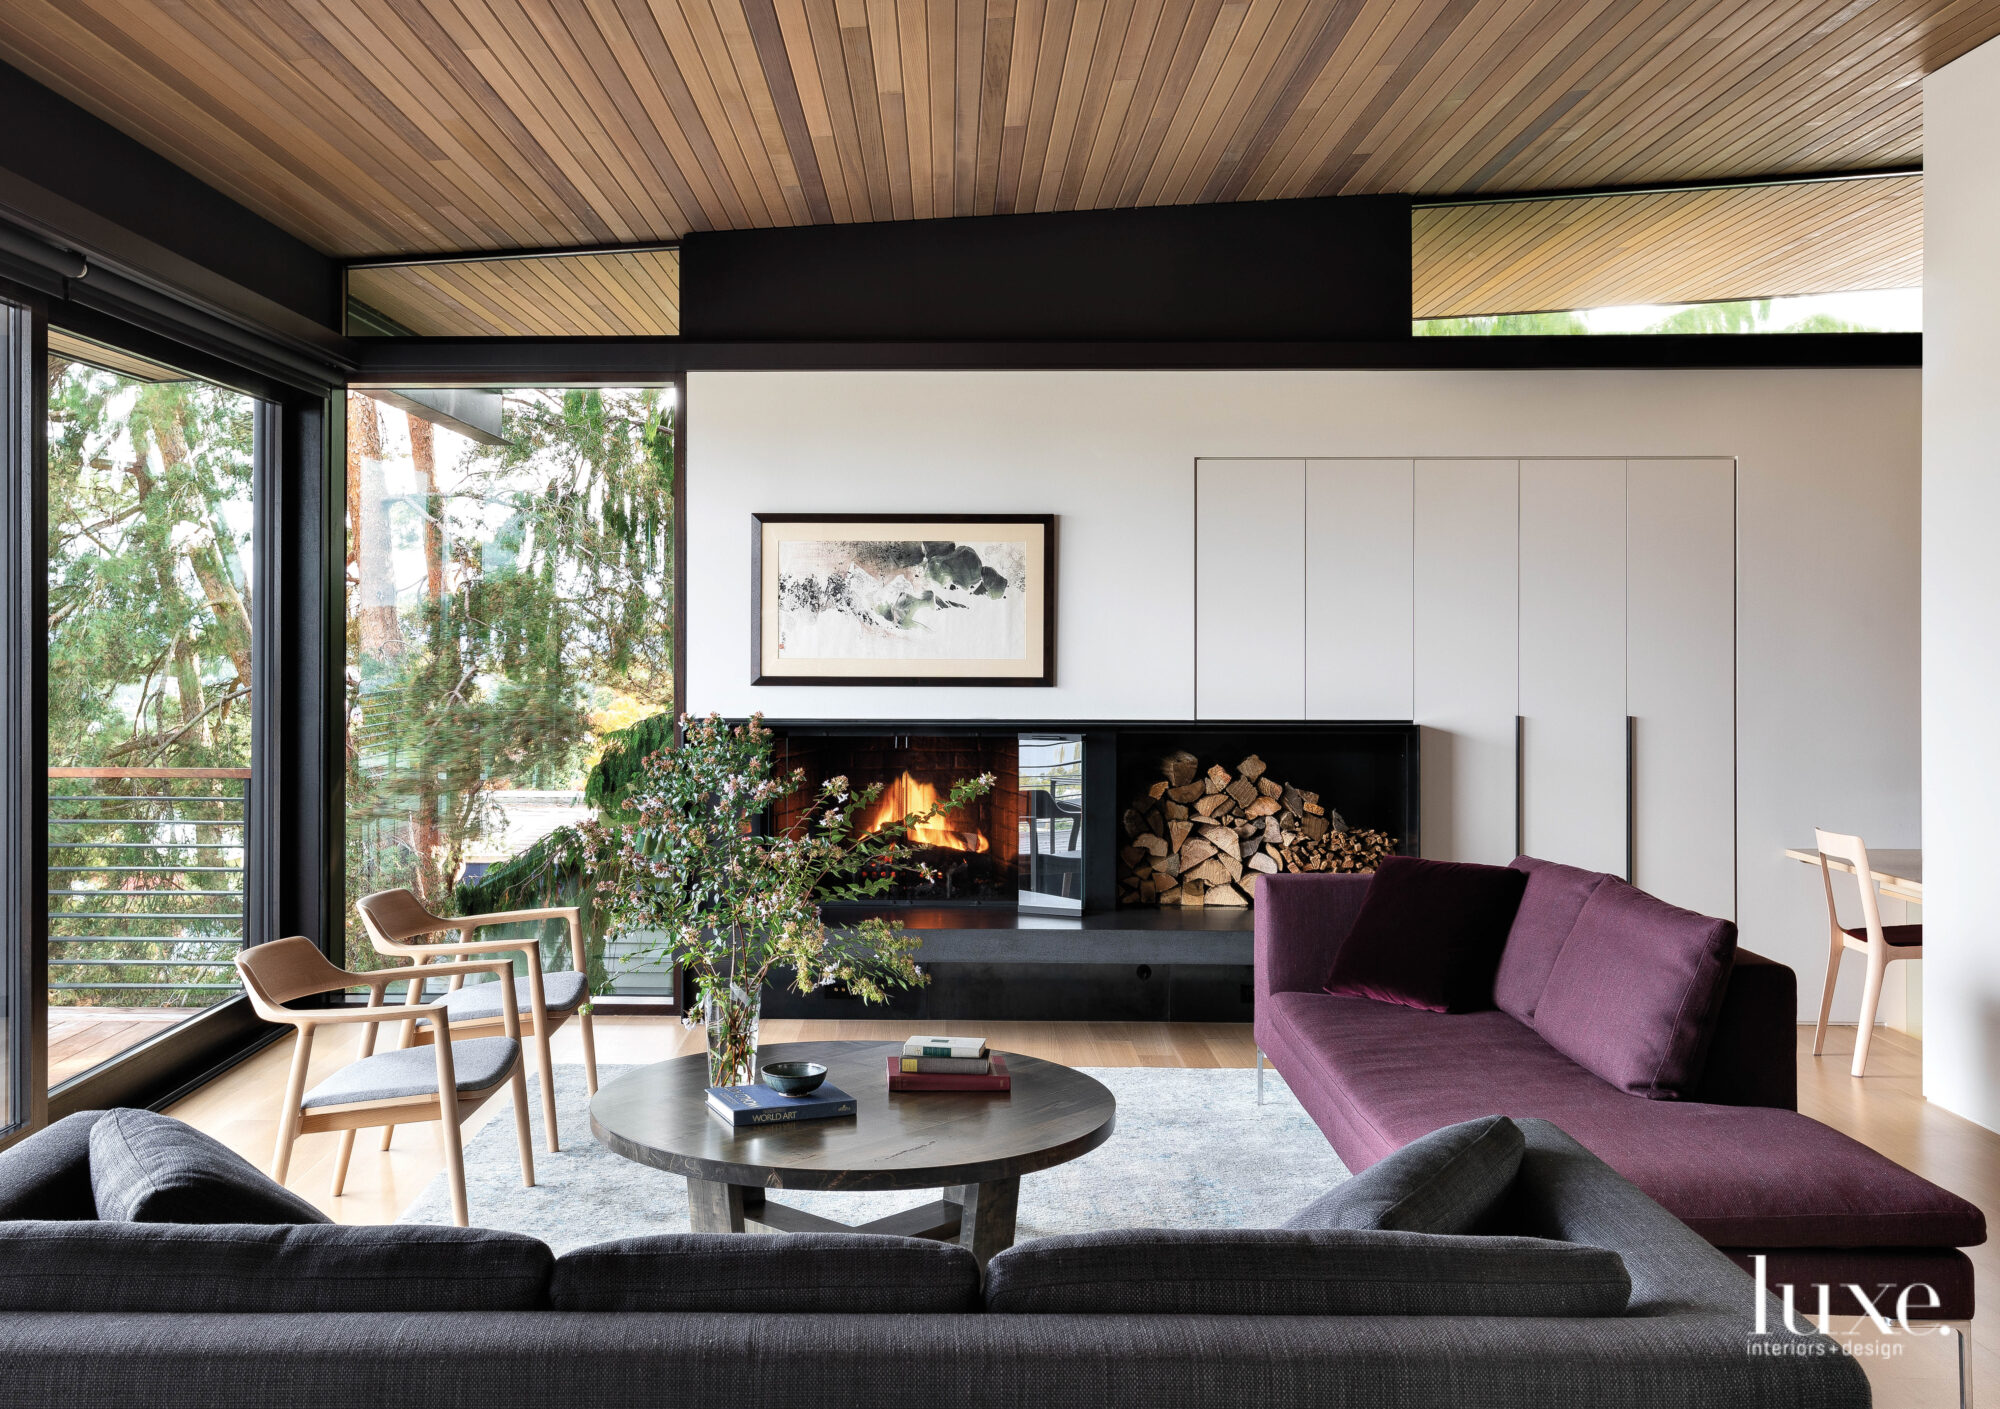 Functionality And Picturesque Surroundings Set The Stage For A Pacific Northwest Home